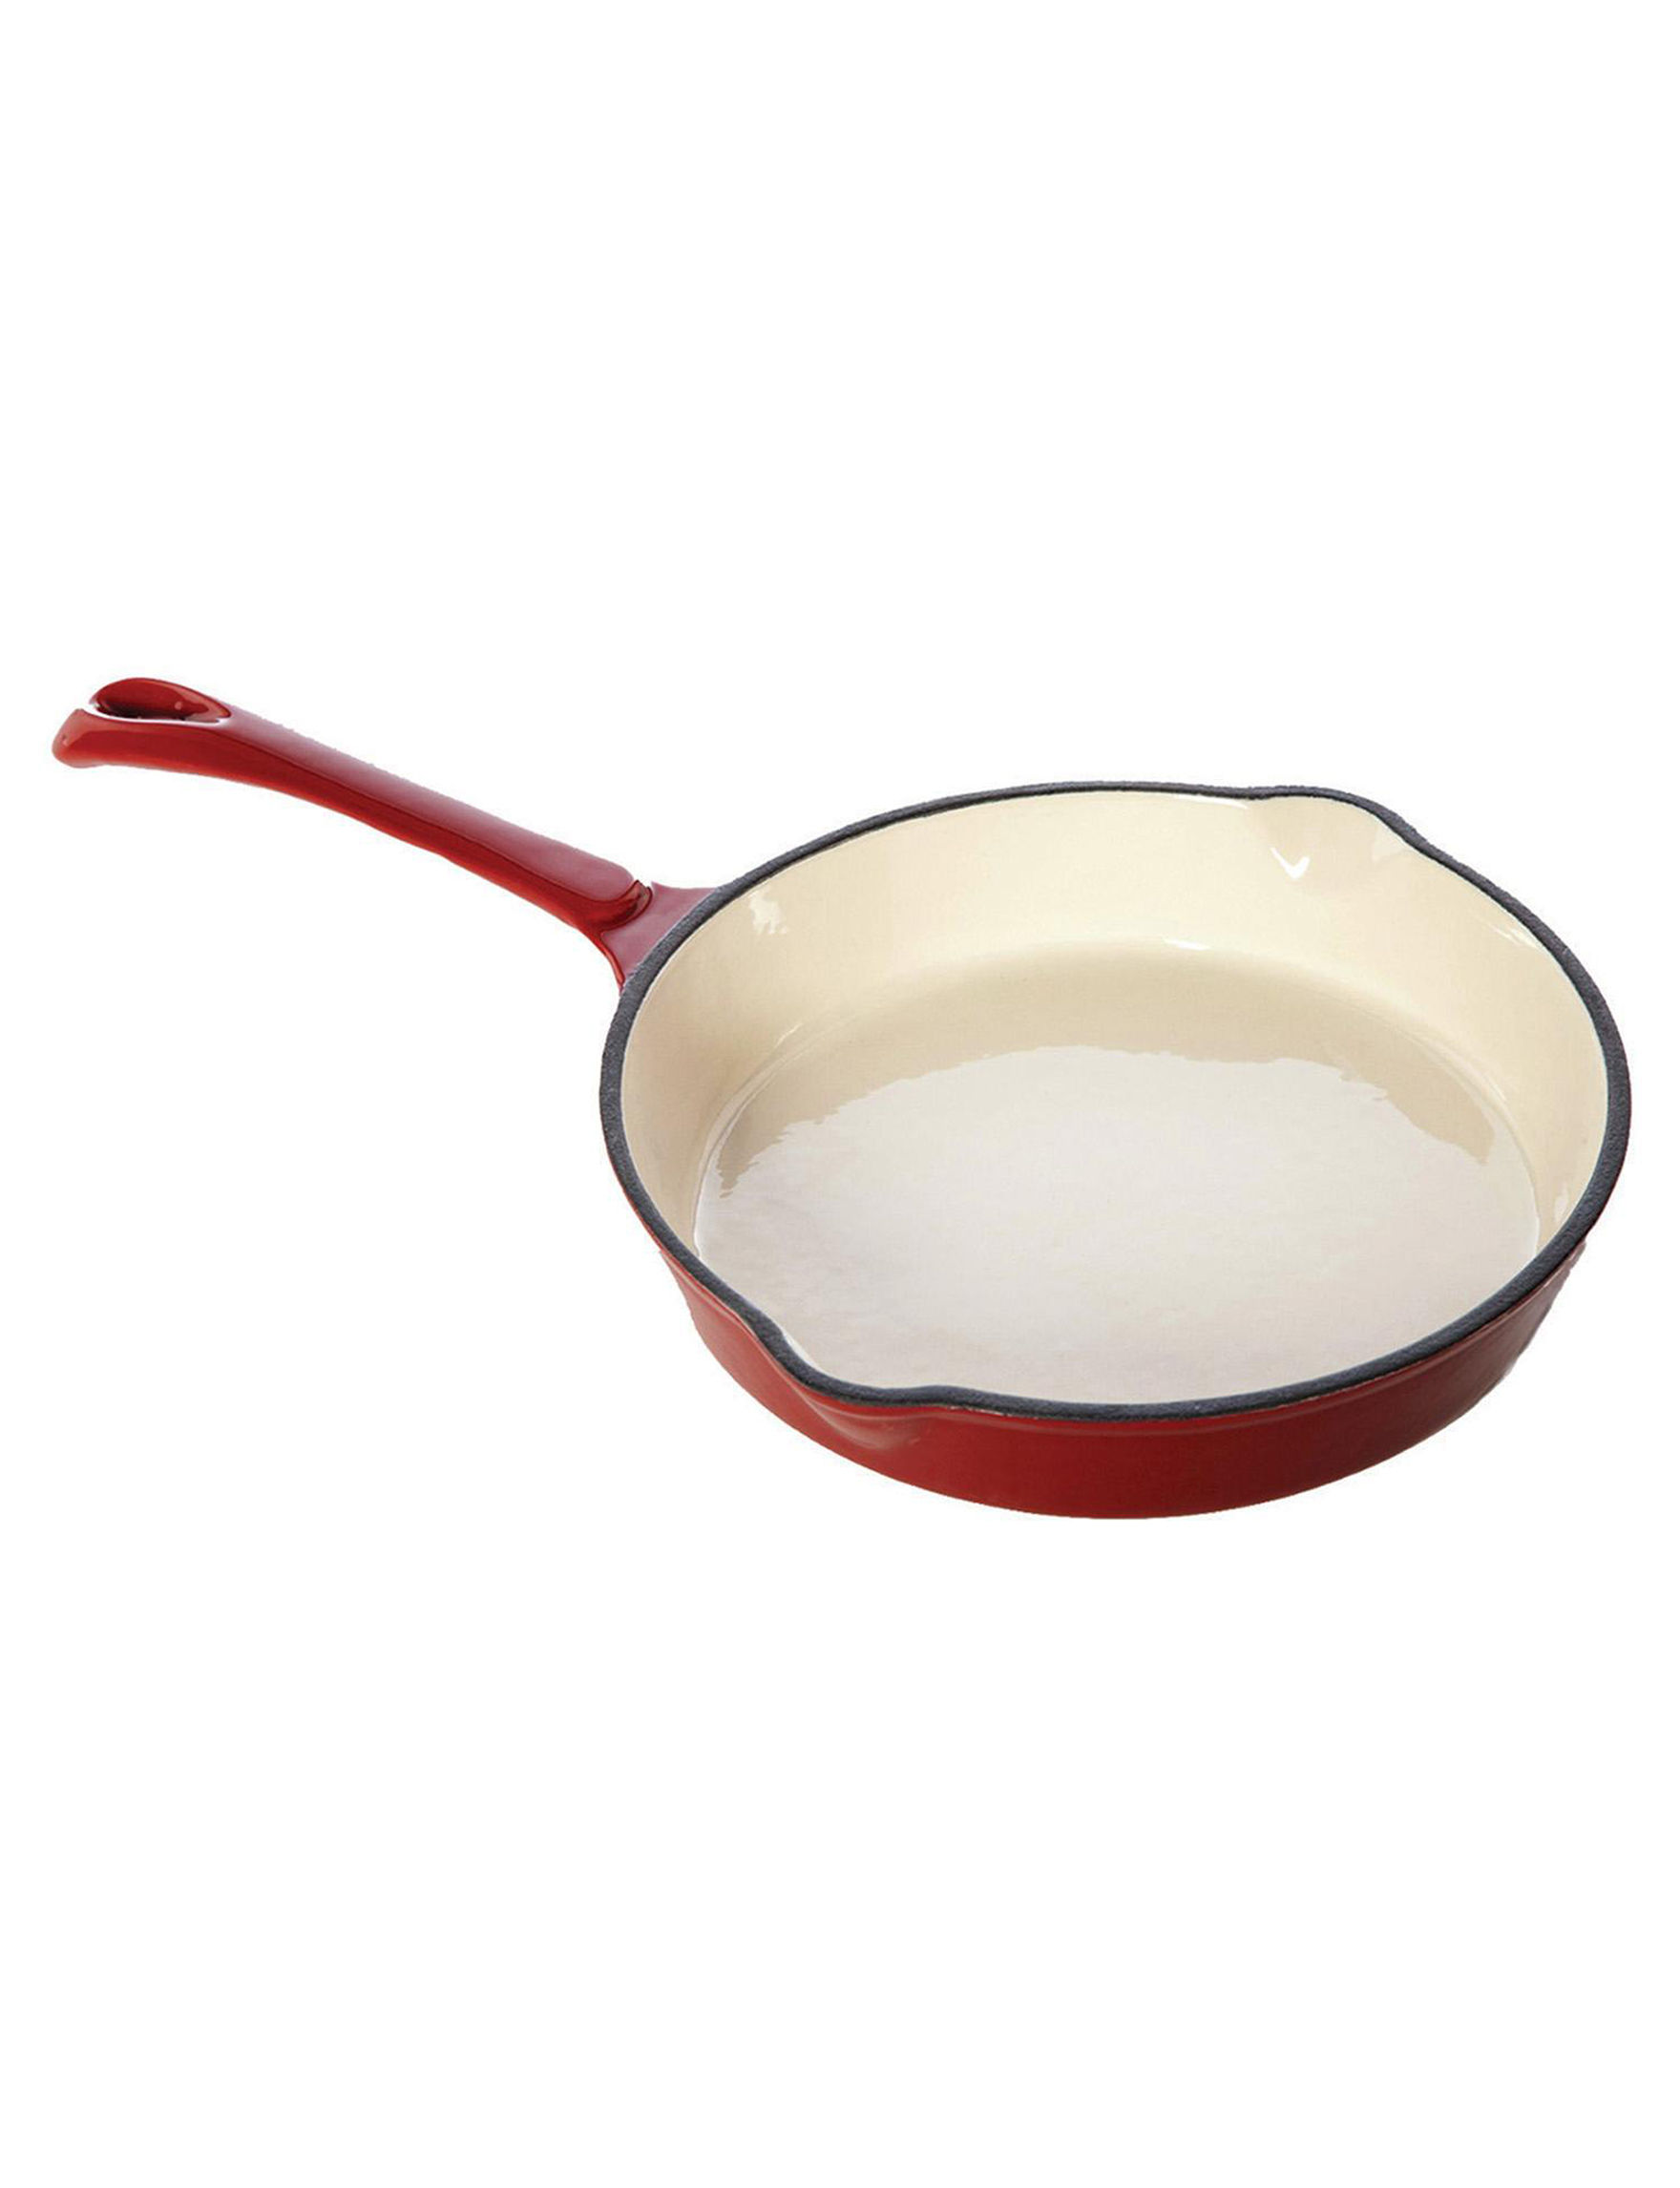 Diamond Home Red Frying Pans & Skillets Cookware